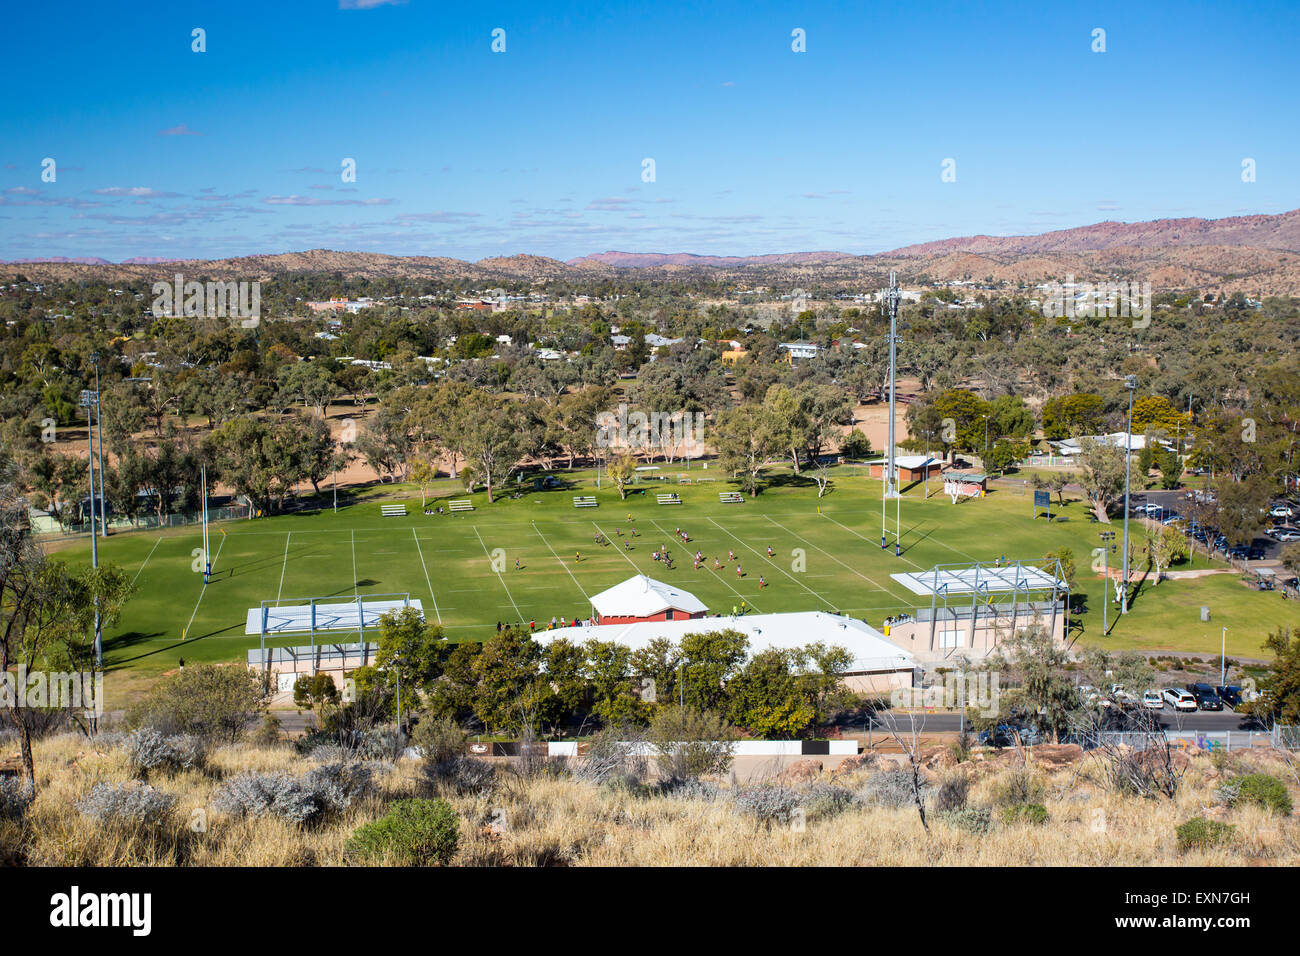 View from Anzac Hill over Anzac Park on a fine winter's day in Alice Springs, Northern Territory, Australia - Stock Image